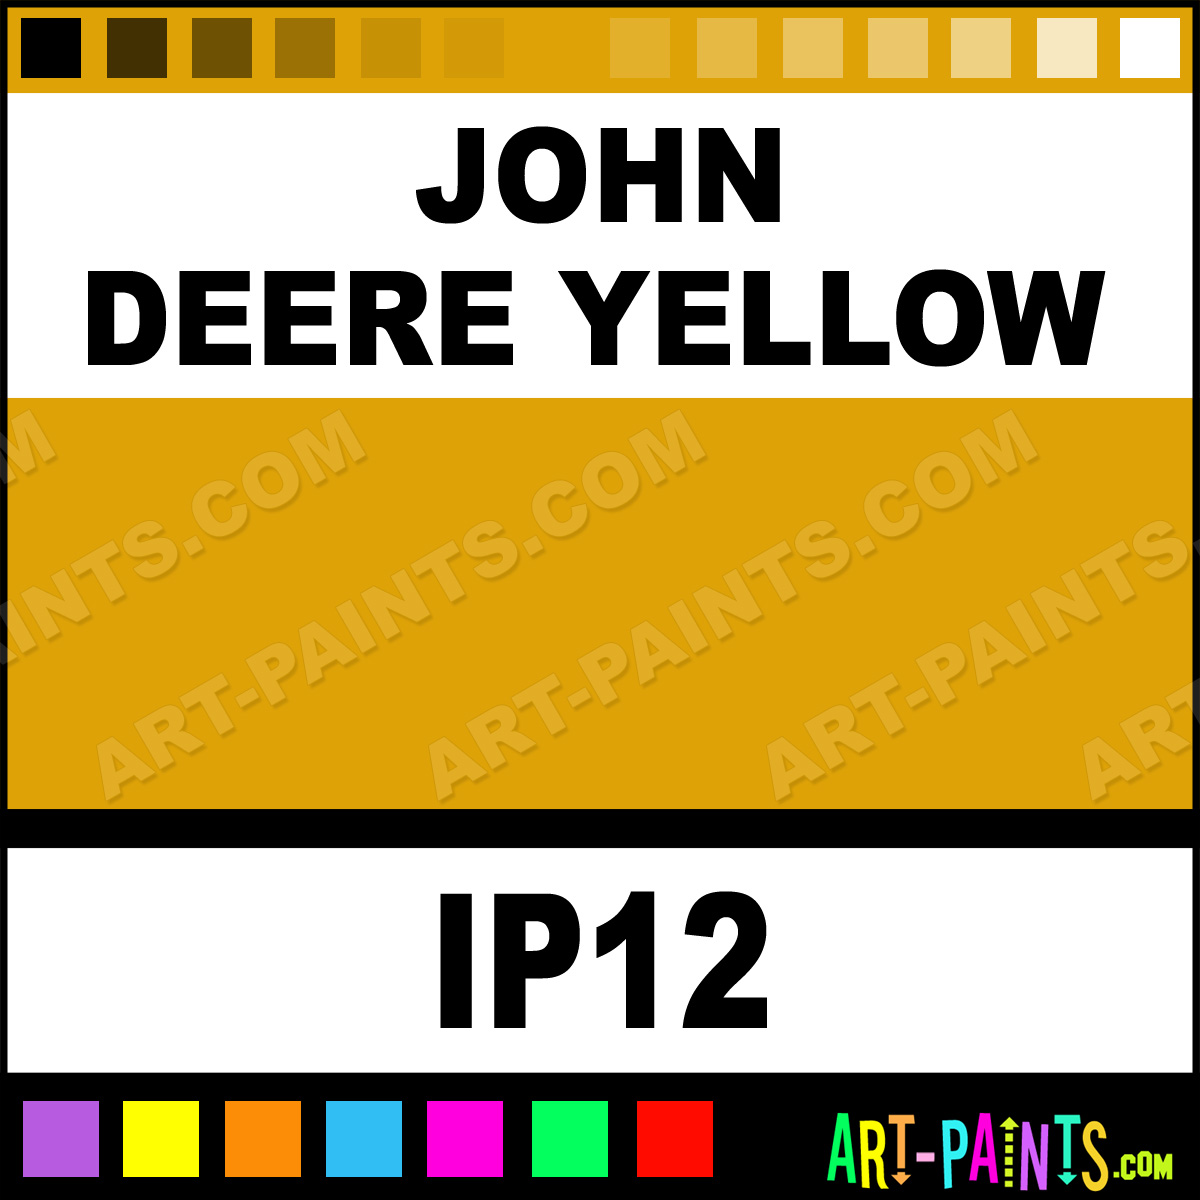 John Deere Room Paint Colors http://www.art-paints.com/Paints/Metal/Intercoastal/John-Deere-Yellow/John-Deere-Yellow.html